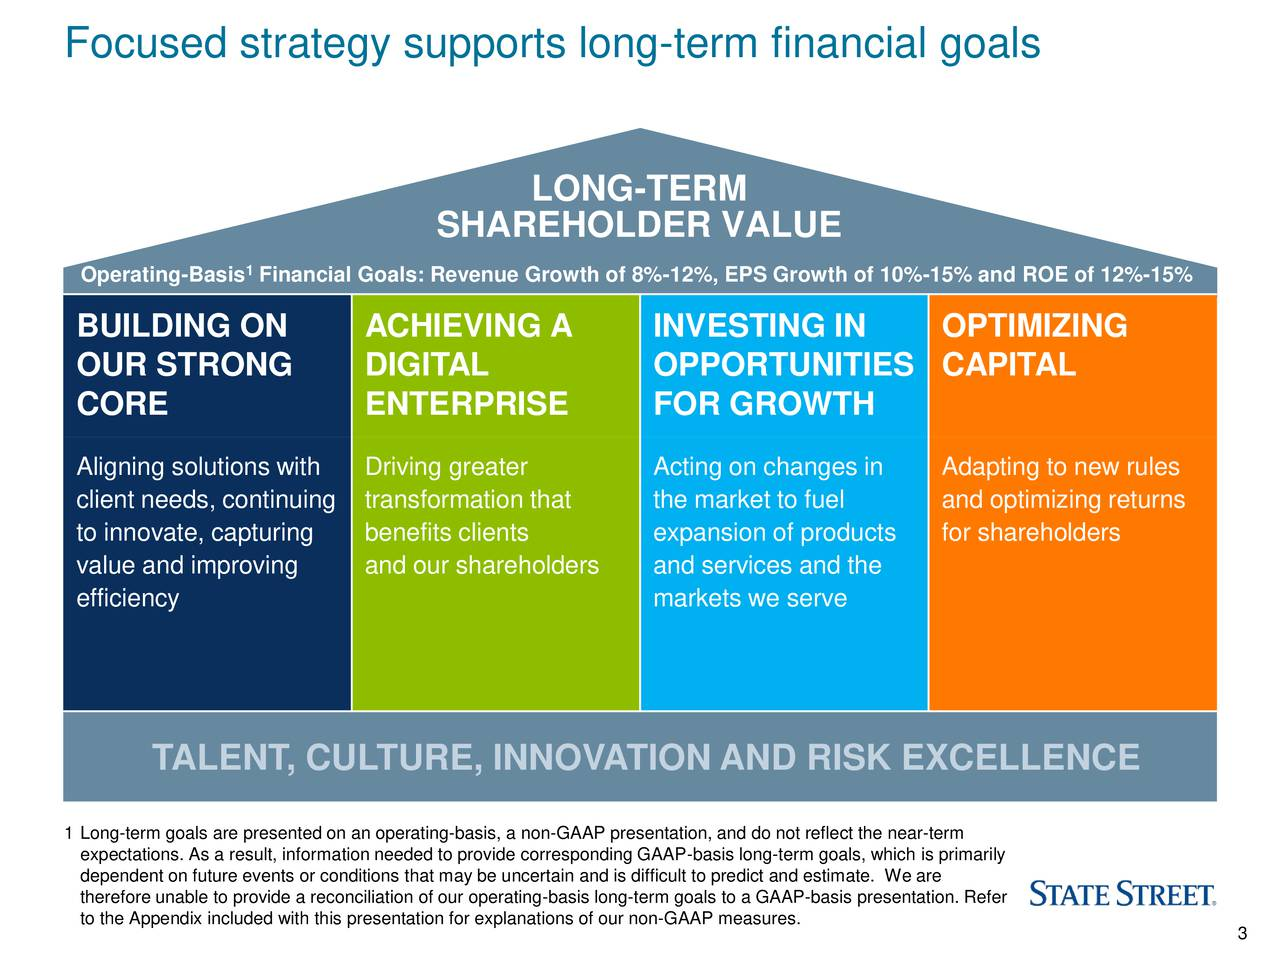 LONG-TERM SHAREHOLDER VALUE 1 Operating-Basis Financial Goals: Revenue Growth of 8%-12%, EPS Growth of 10%-15% and ROE of 12%-15% BUILDING ON ACHIEVING A INVESTING IN OPTIMIZING OUR STRONG DIGITAL OPPORTUNITIES CAPITAL CORE ENTERPRISE FOR GROWTH Aligning solutions wiDriving greater Acting on changes in Adapting to new rules client needs, continutransformation that the market to fuel and optimizing returns to innovate, capturinbenefits clients expansion of productsfor shareholders value and improving and our shareholders and services and the efficiency markets we serve TALENT, CULTURE, INNOVATION AND RISK EXCELLENCE 1 Long-term goals are presented on an operating-basis, a non-GAAP presentation, and do not reflect the near-term expectations. As a result, information needed to provide corresponding GAAP-basis long-term goals, which is primarily dependent on future events or conditions that may be uncertain and is difficult to predict and estimate. We are therefore unable to provide a reconciliation of our operating-basis long-term goals to a GAAP-basis presentation. Refer to the Appendix included with this presentation for explanations of our non-GAAP measu3es.